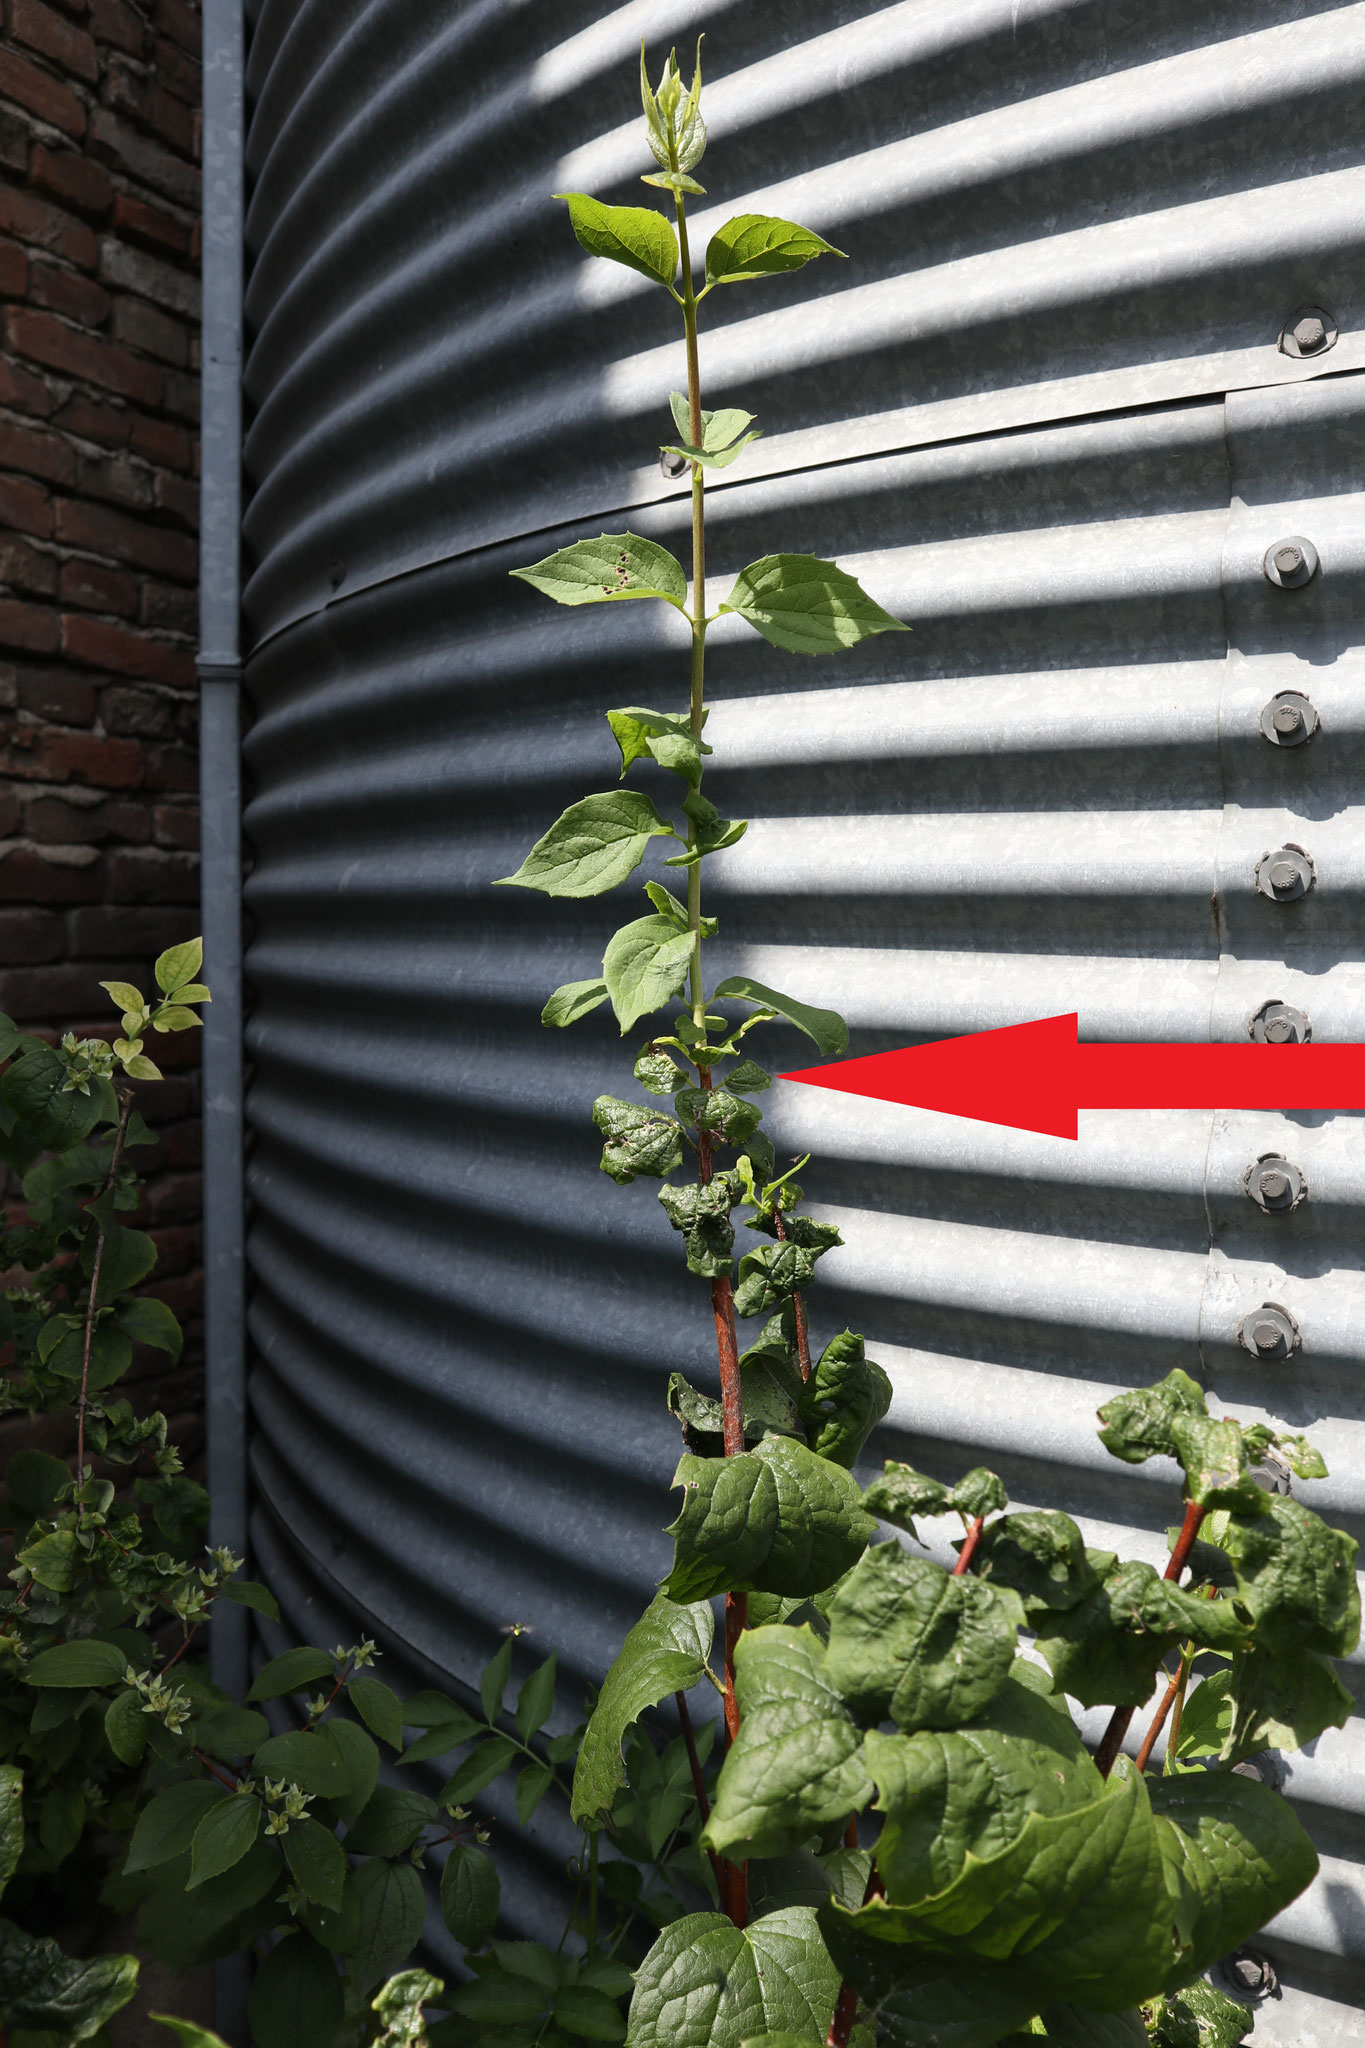 This plant had problems with insect pests. The red arrow marks the place where the treatment with KE-plant and KE-mineral was applied.